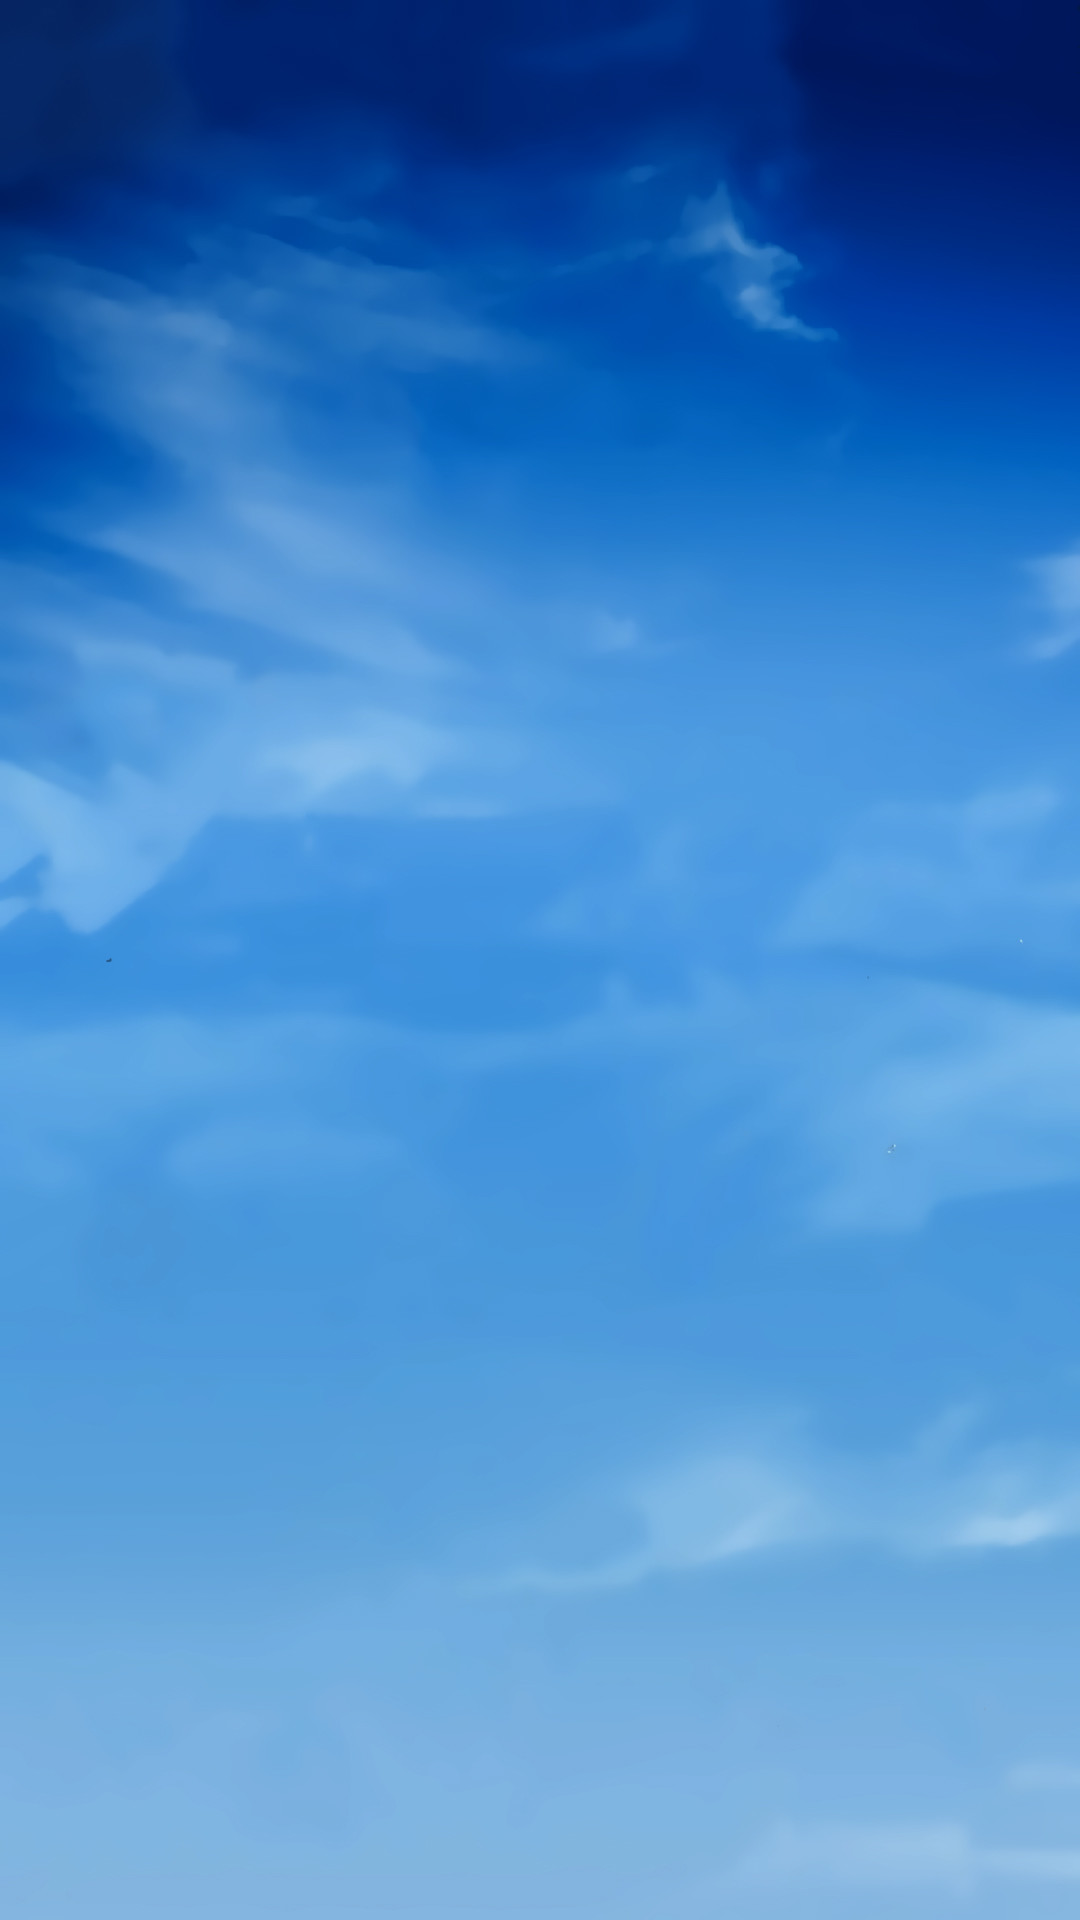 Blue Sky Smudge Clouds Android Wallpaper …